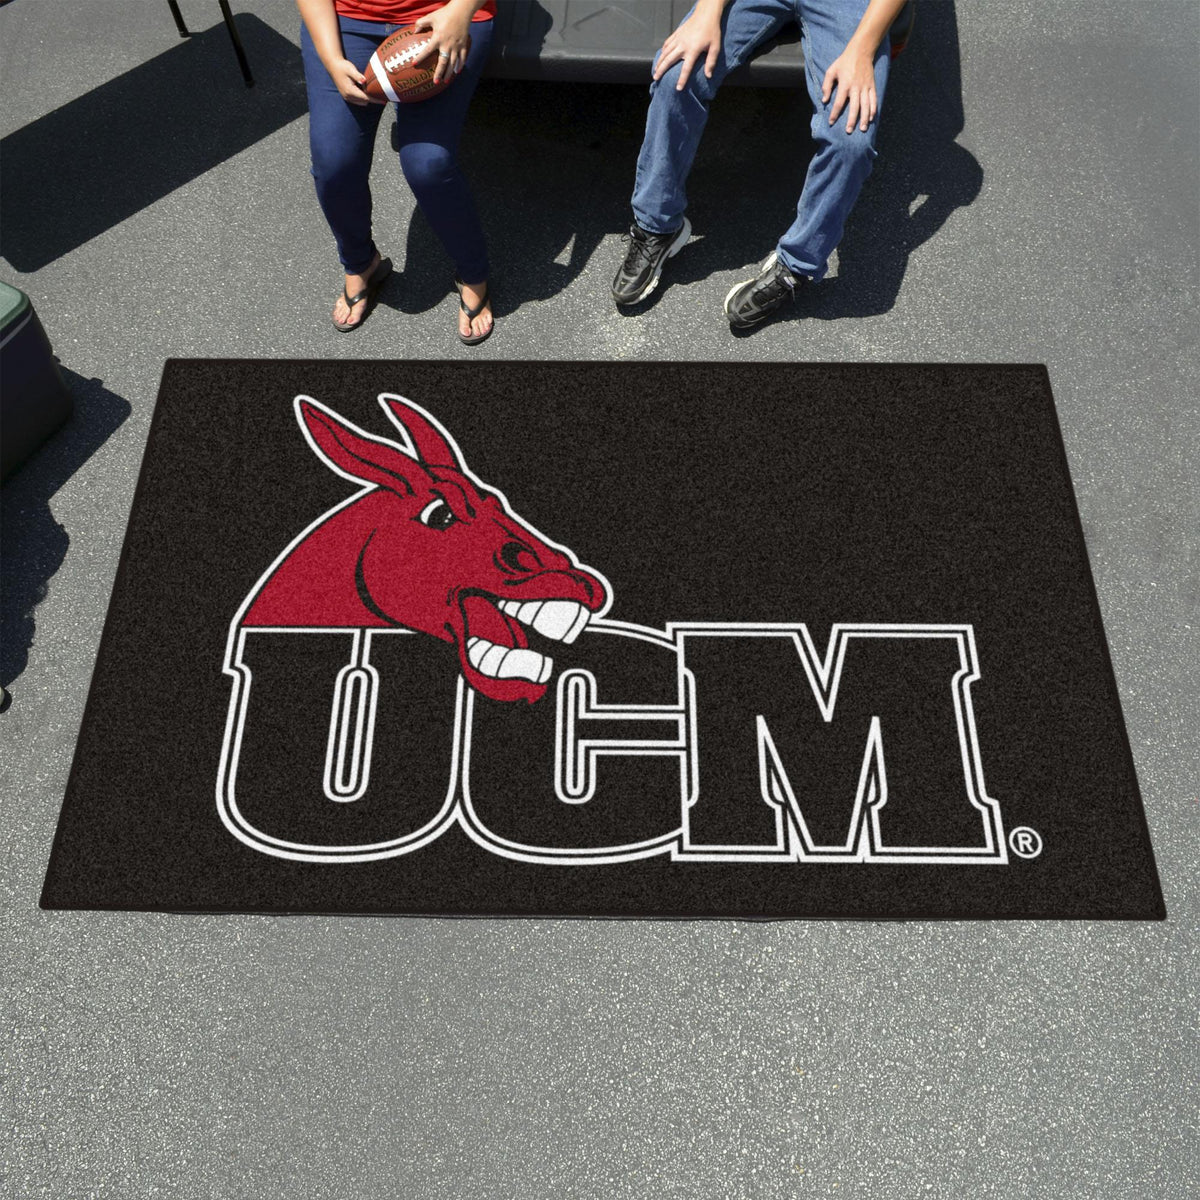 Collegiate - Ulti-Mat: A - L Collegiate Mats, Rectangular Mats, Ulti-Mat, Collegiate, Home Fan Mats Central Missouri